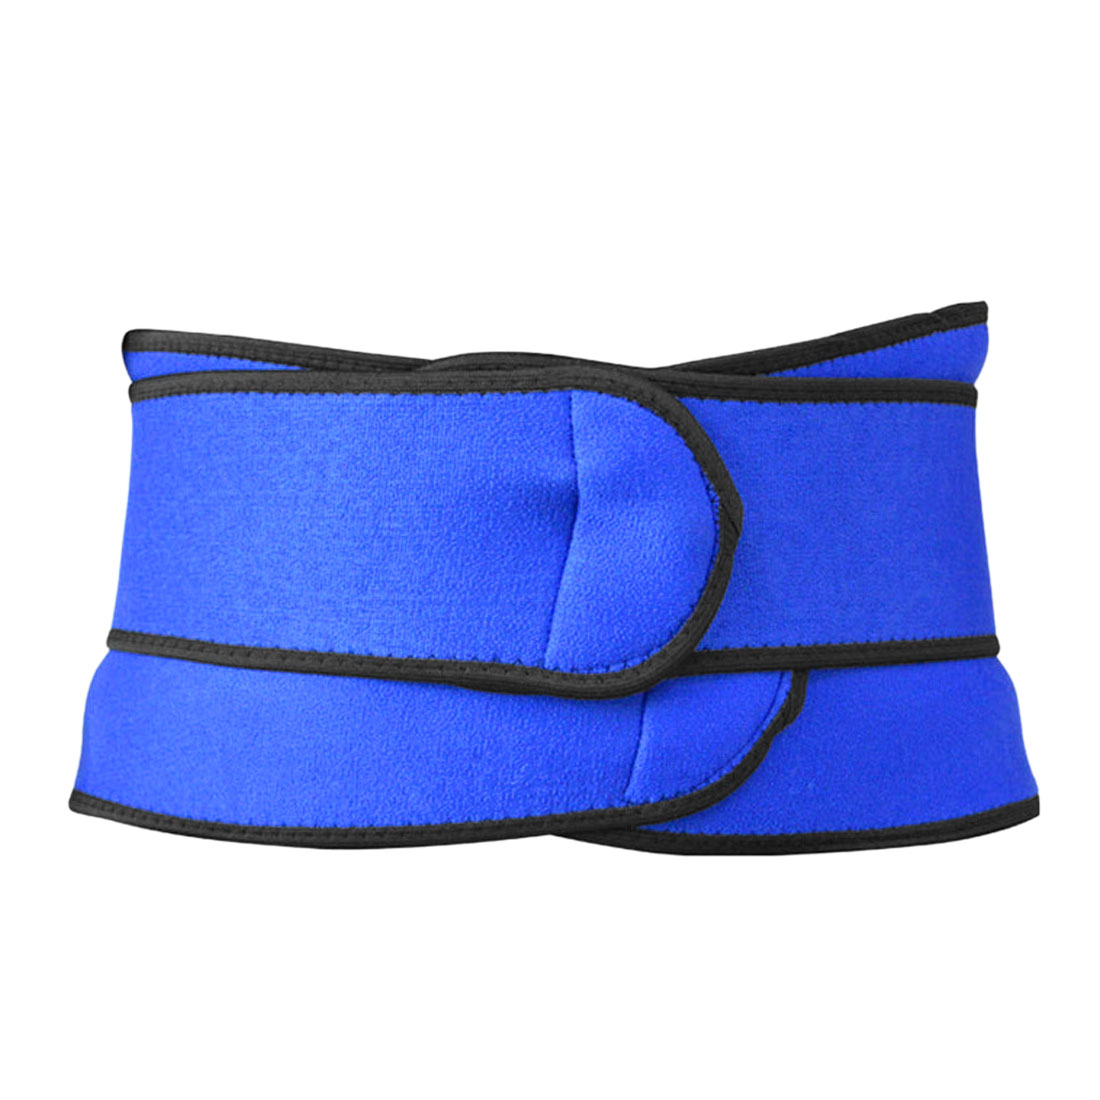 Blue Hook Loop Closure Sports Protect Waist Protector Support Band Warm Keeper